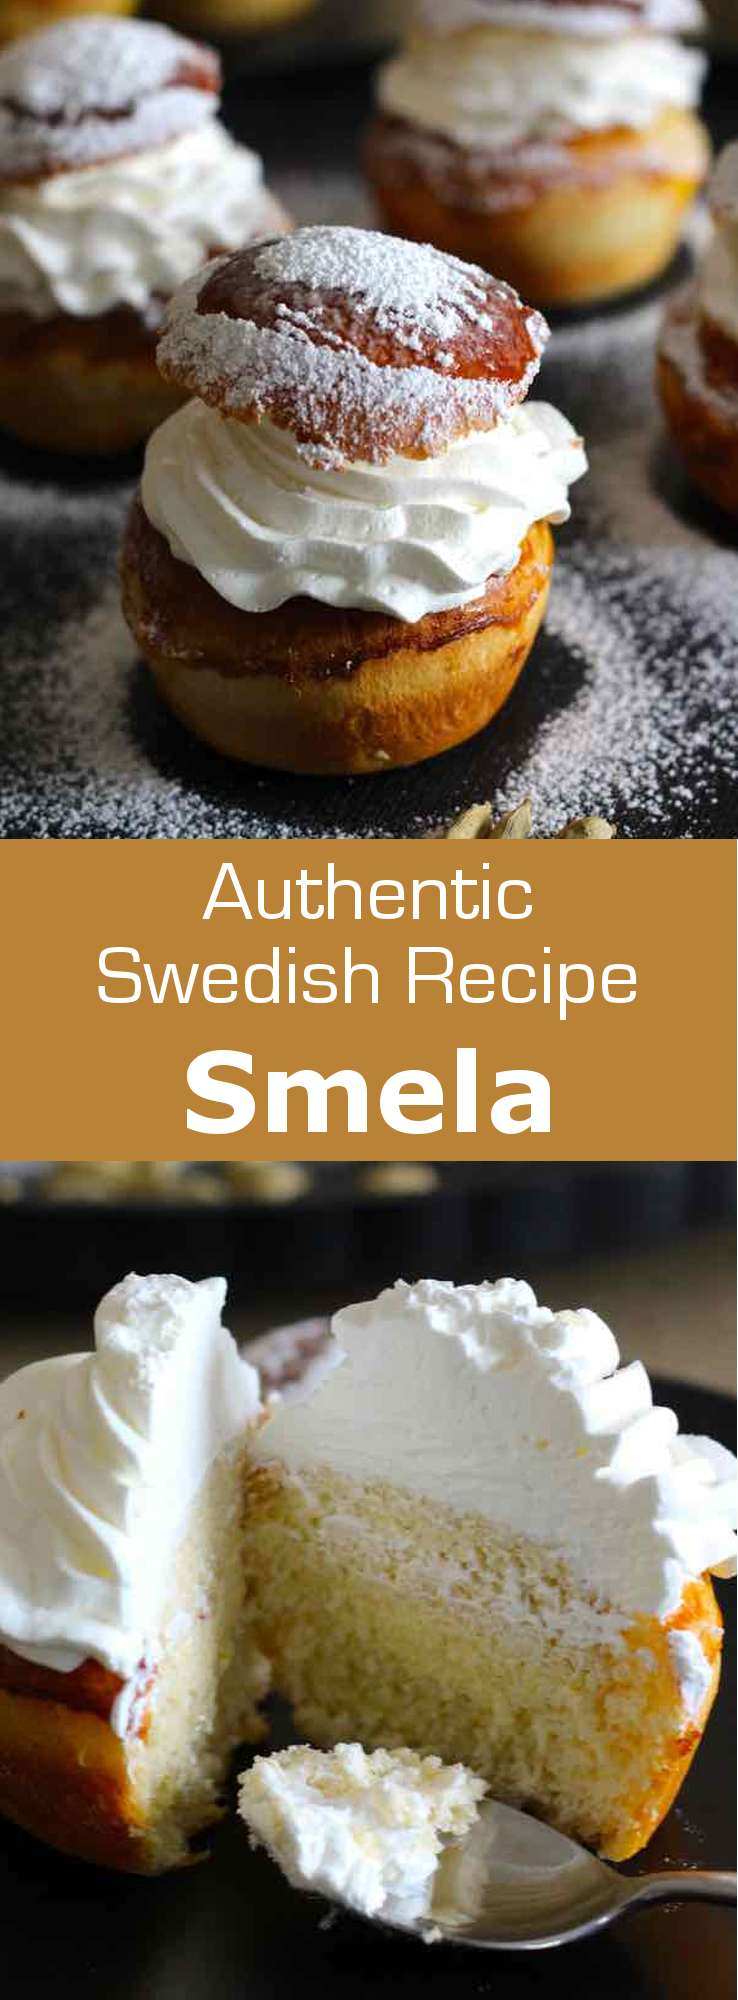 Semla is a traditional Swedish pastry eaten at Mardi Gras. It is a soft milk brioche filled with whipped cream and almond paste. #Sweden #Scandinavia #Norway #Denmark #Dessert #MardiGras #Lent #196flavors